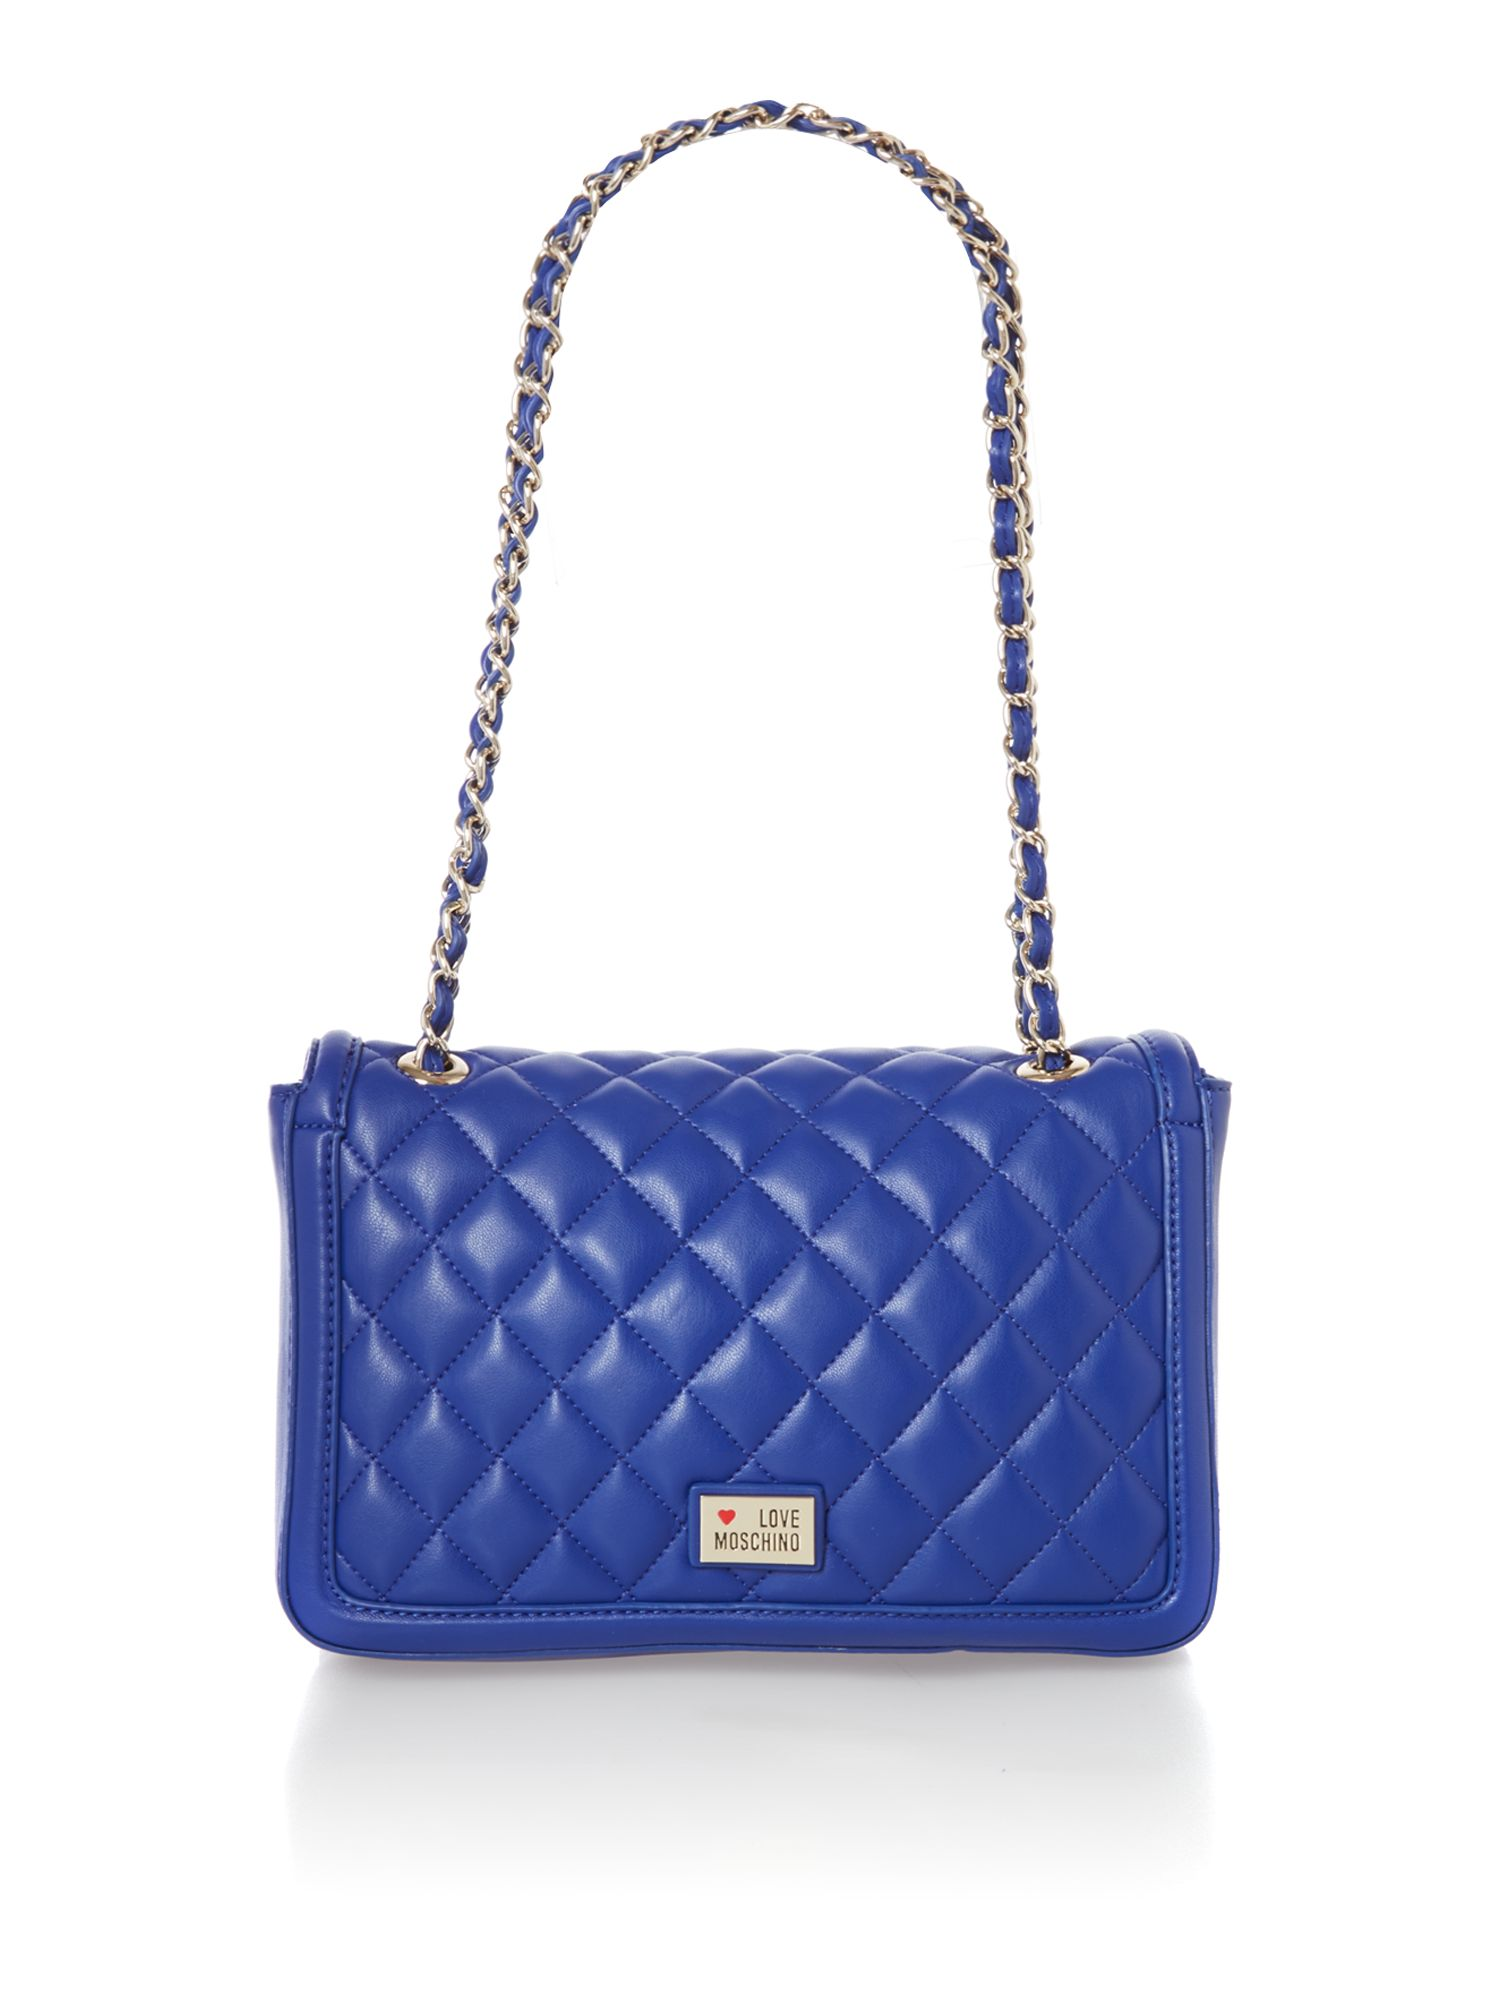 Blue medium quilt flapover shoulder bag